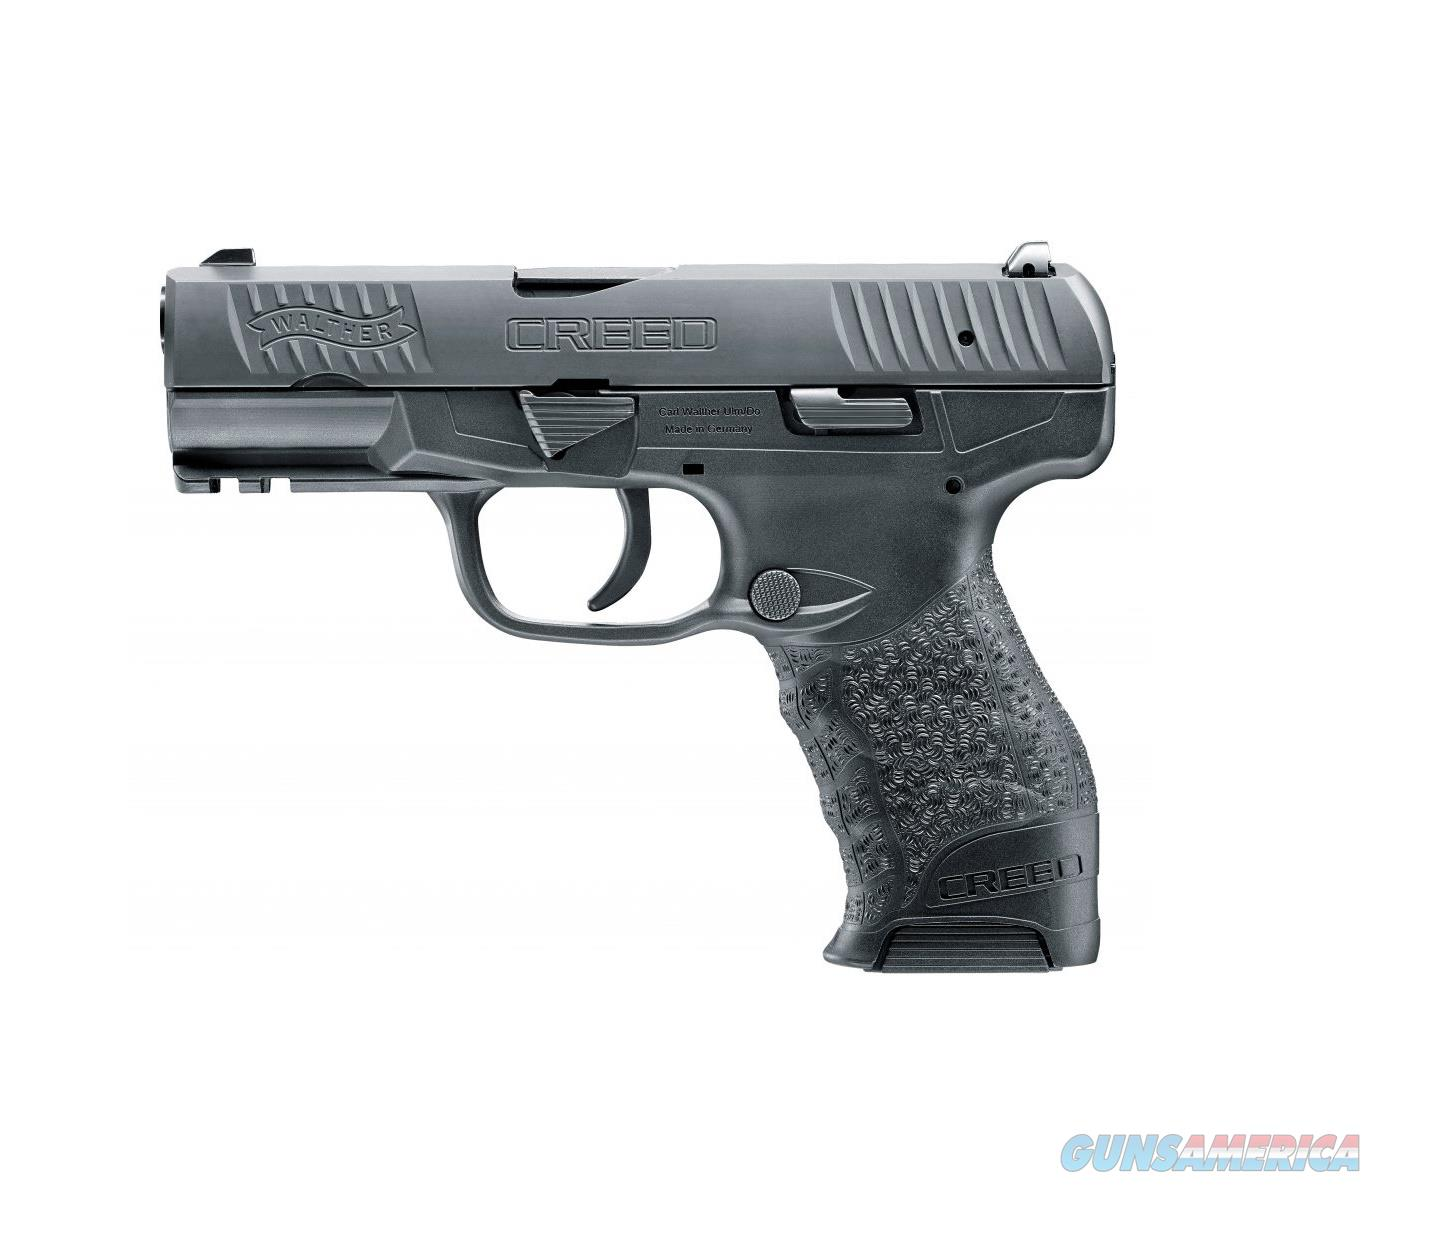 """Walther Arms Creed 9mm 4"""" Barrel 16 Rounds 2815516   Guns > Pistols > Walther Pistols > Post WWII > P99/PPQ"""